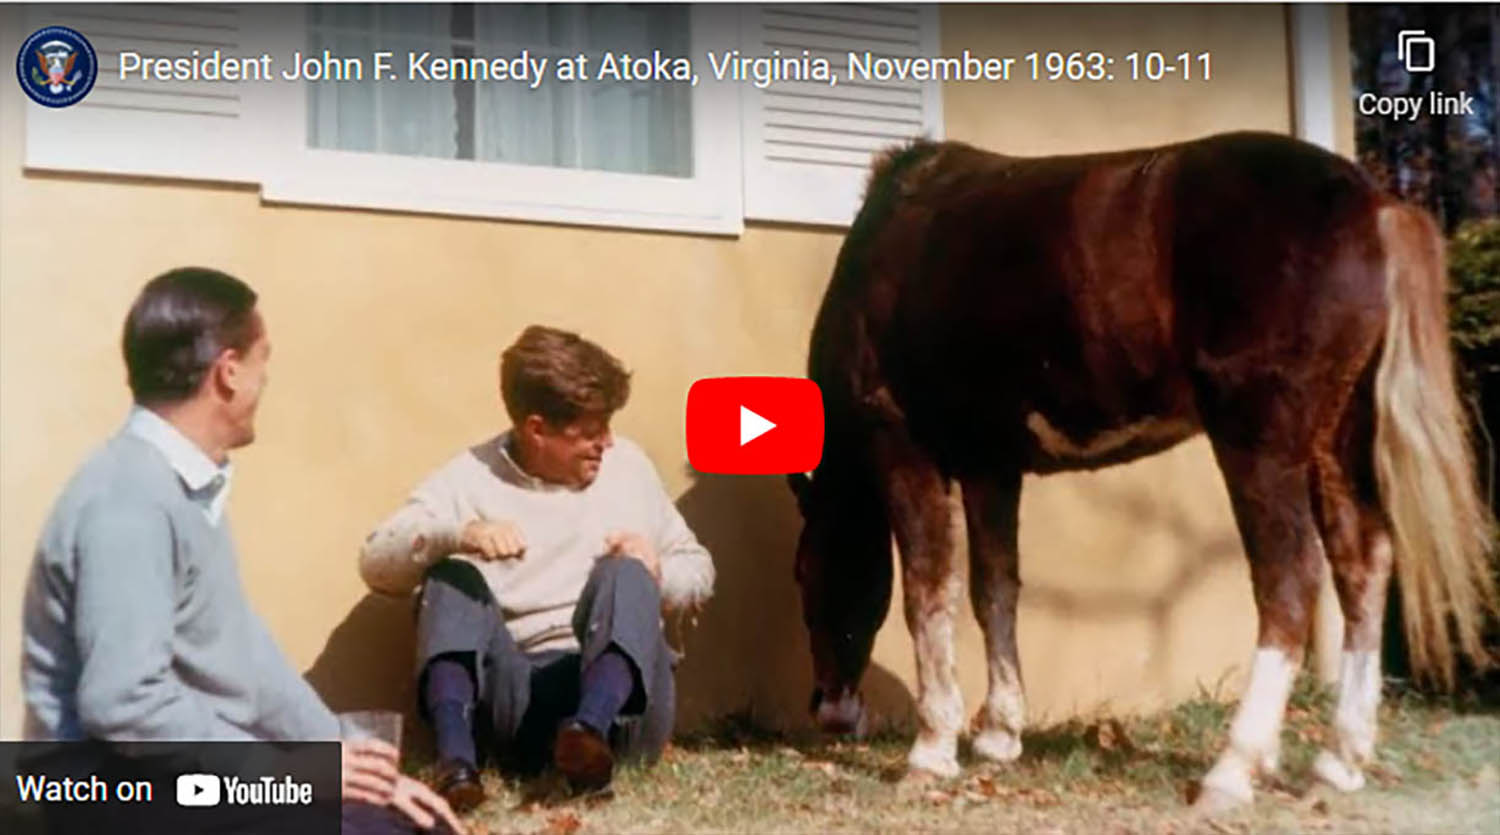 President John F. Kennedy and the Family at Atoka, Virginia, November 1963 - Virginia Horse County